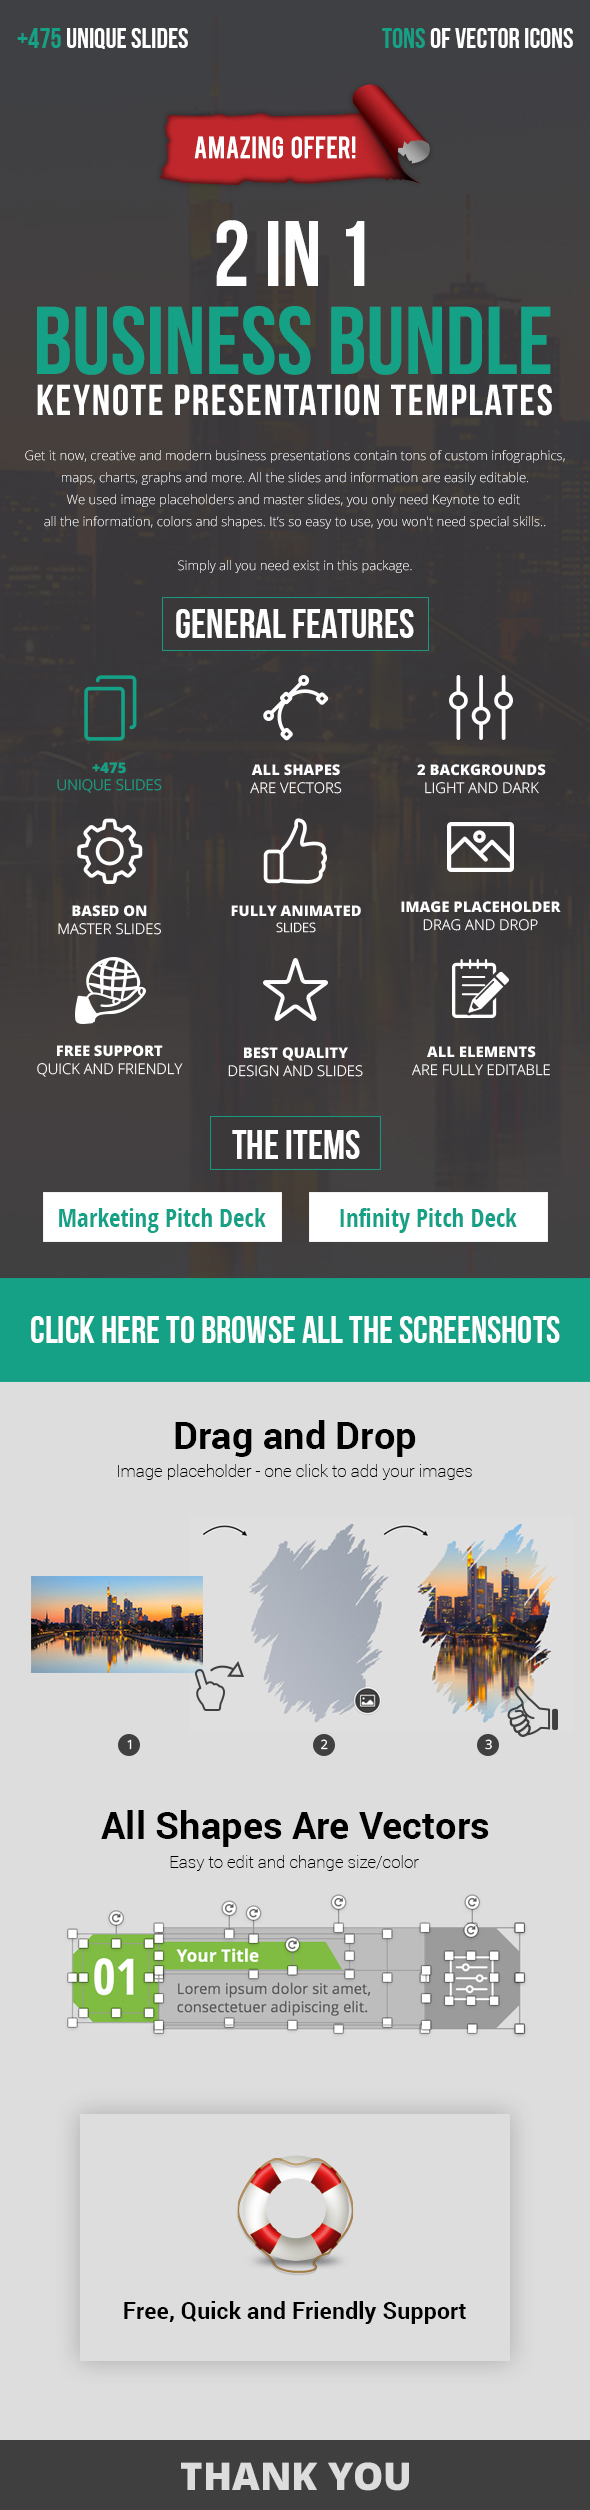 2 in 1 Great Keynote Pitch Deck Bundle - Business Keynote Templates